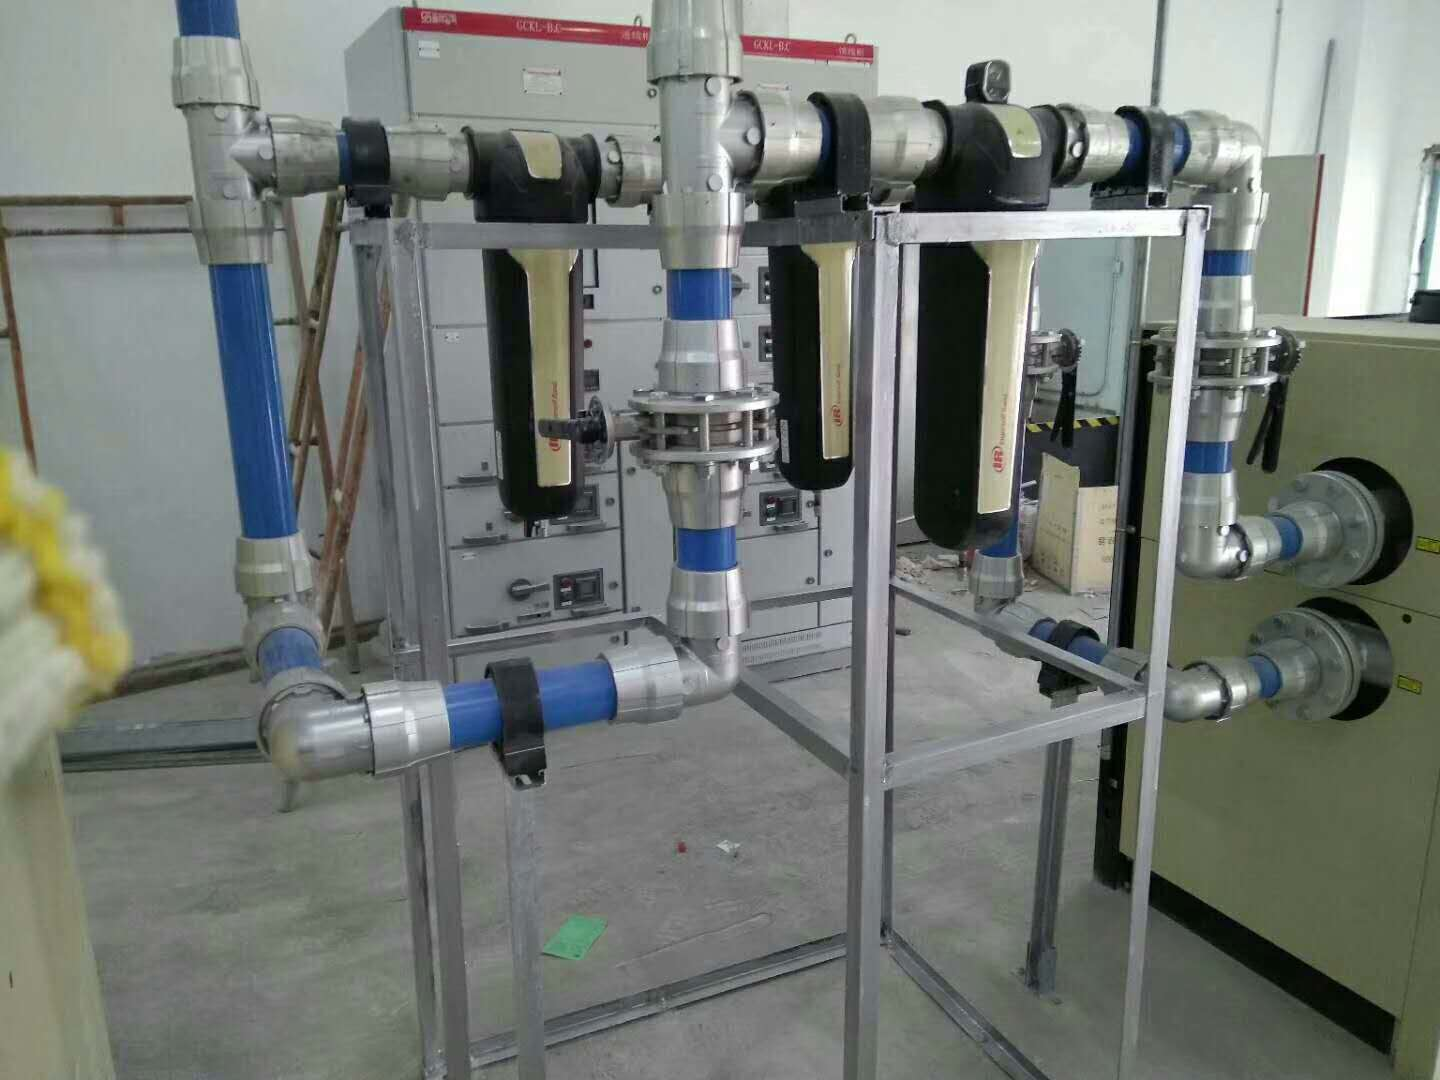 Reasons for unstable pressure and insufficient air volume in compressed air piping